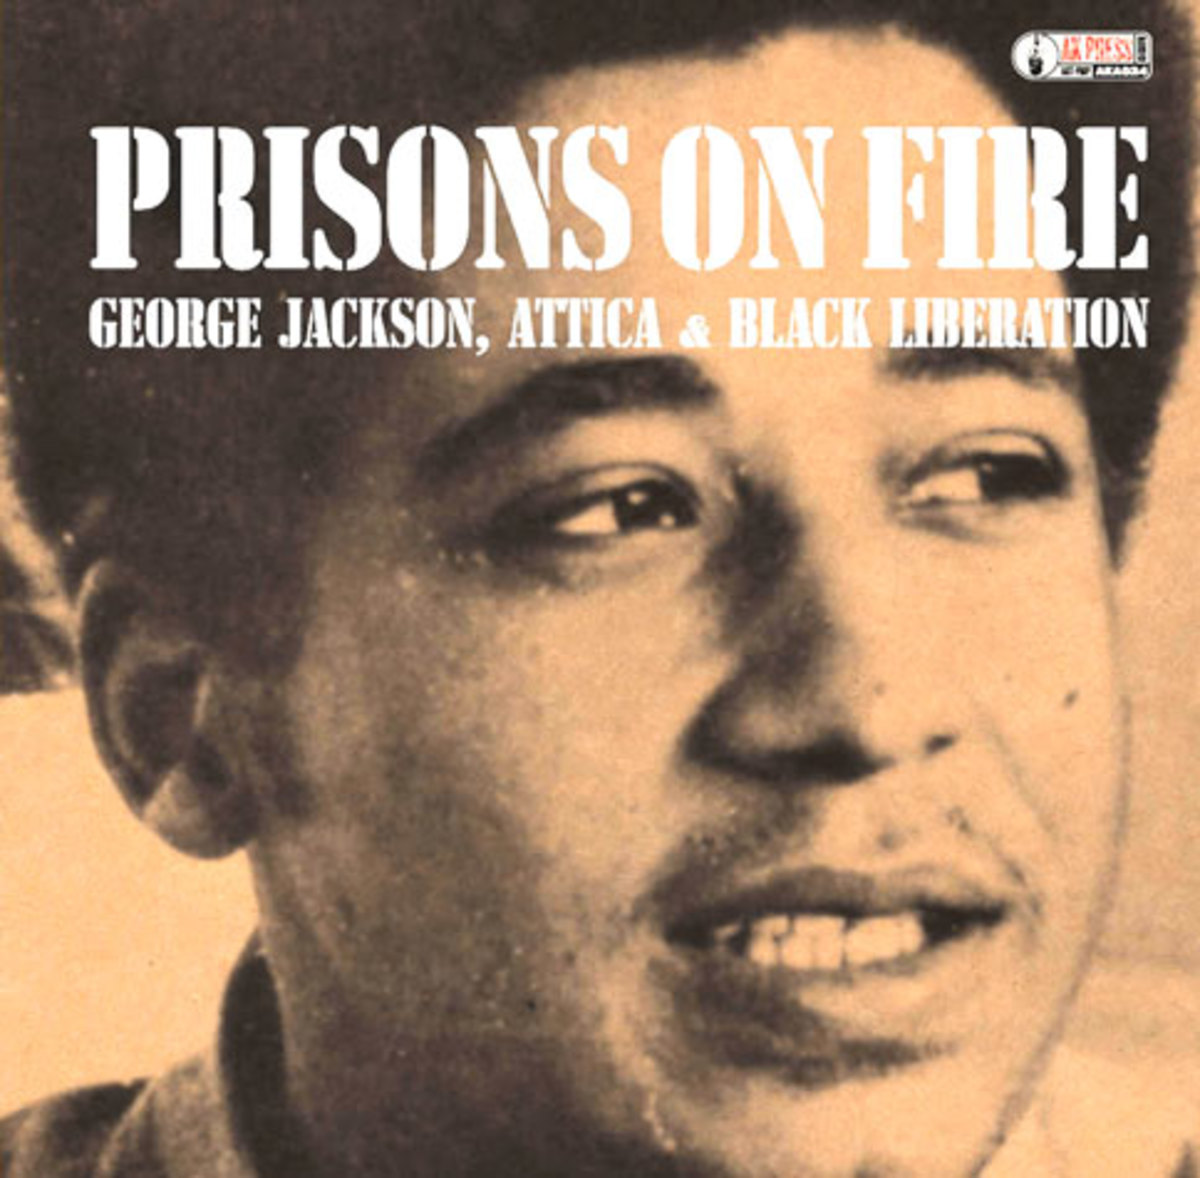 George Jackson, imprispned from 1 year to life and was killed by guards in the Prison of Attica